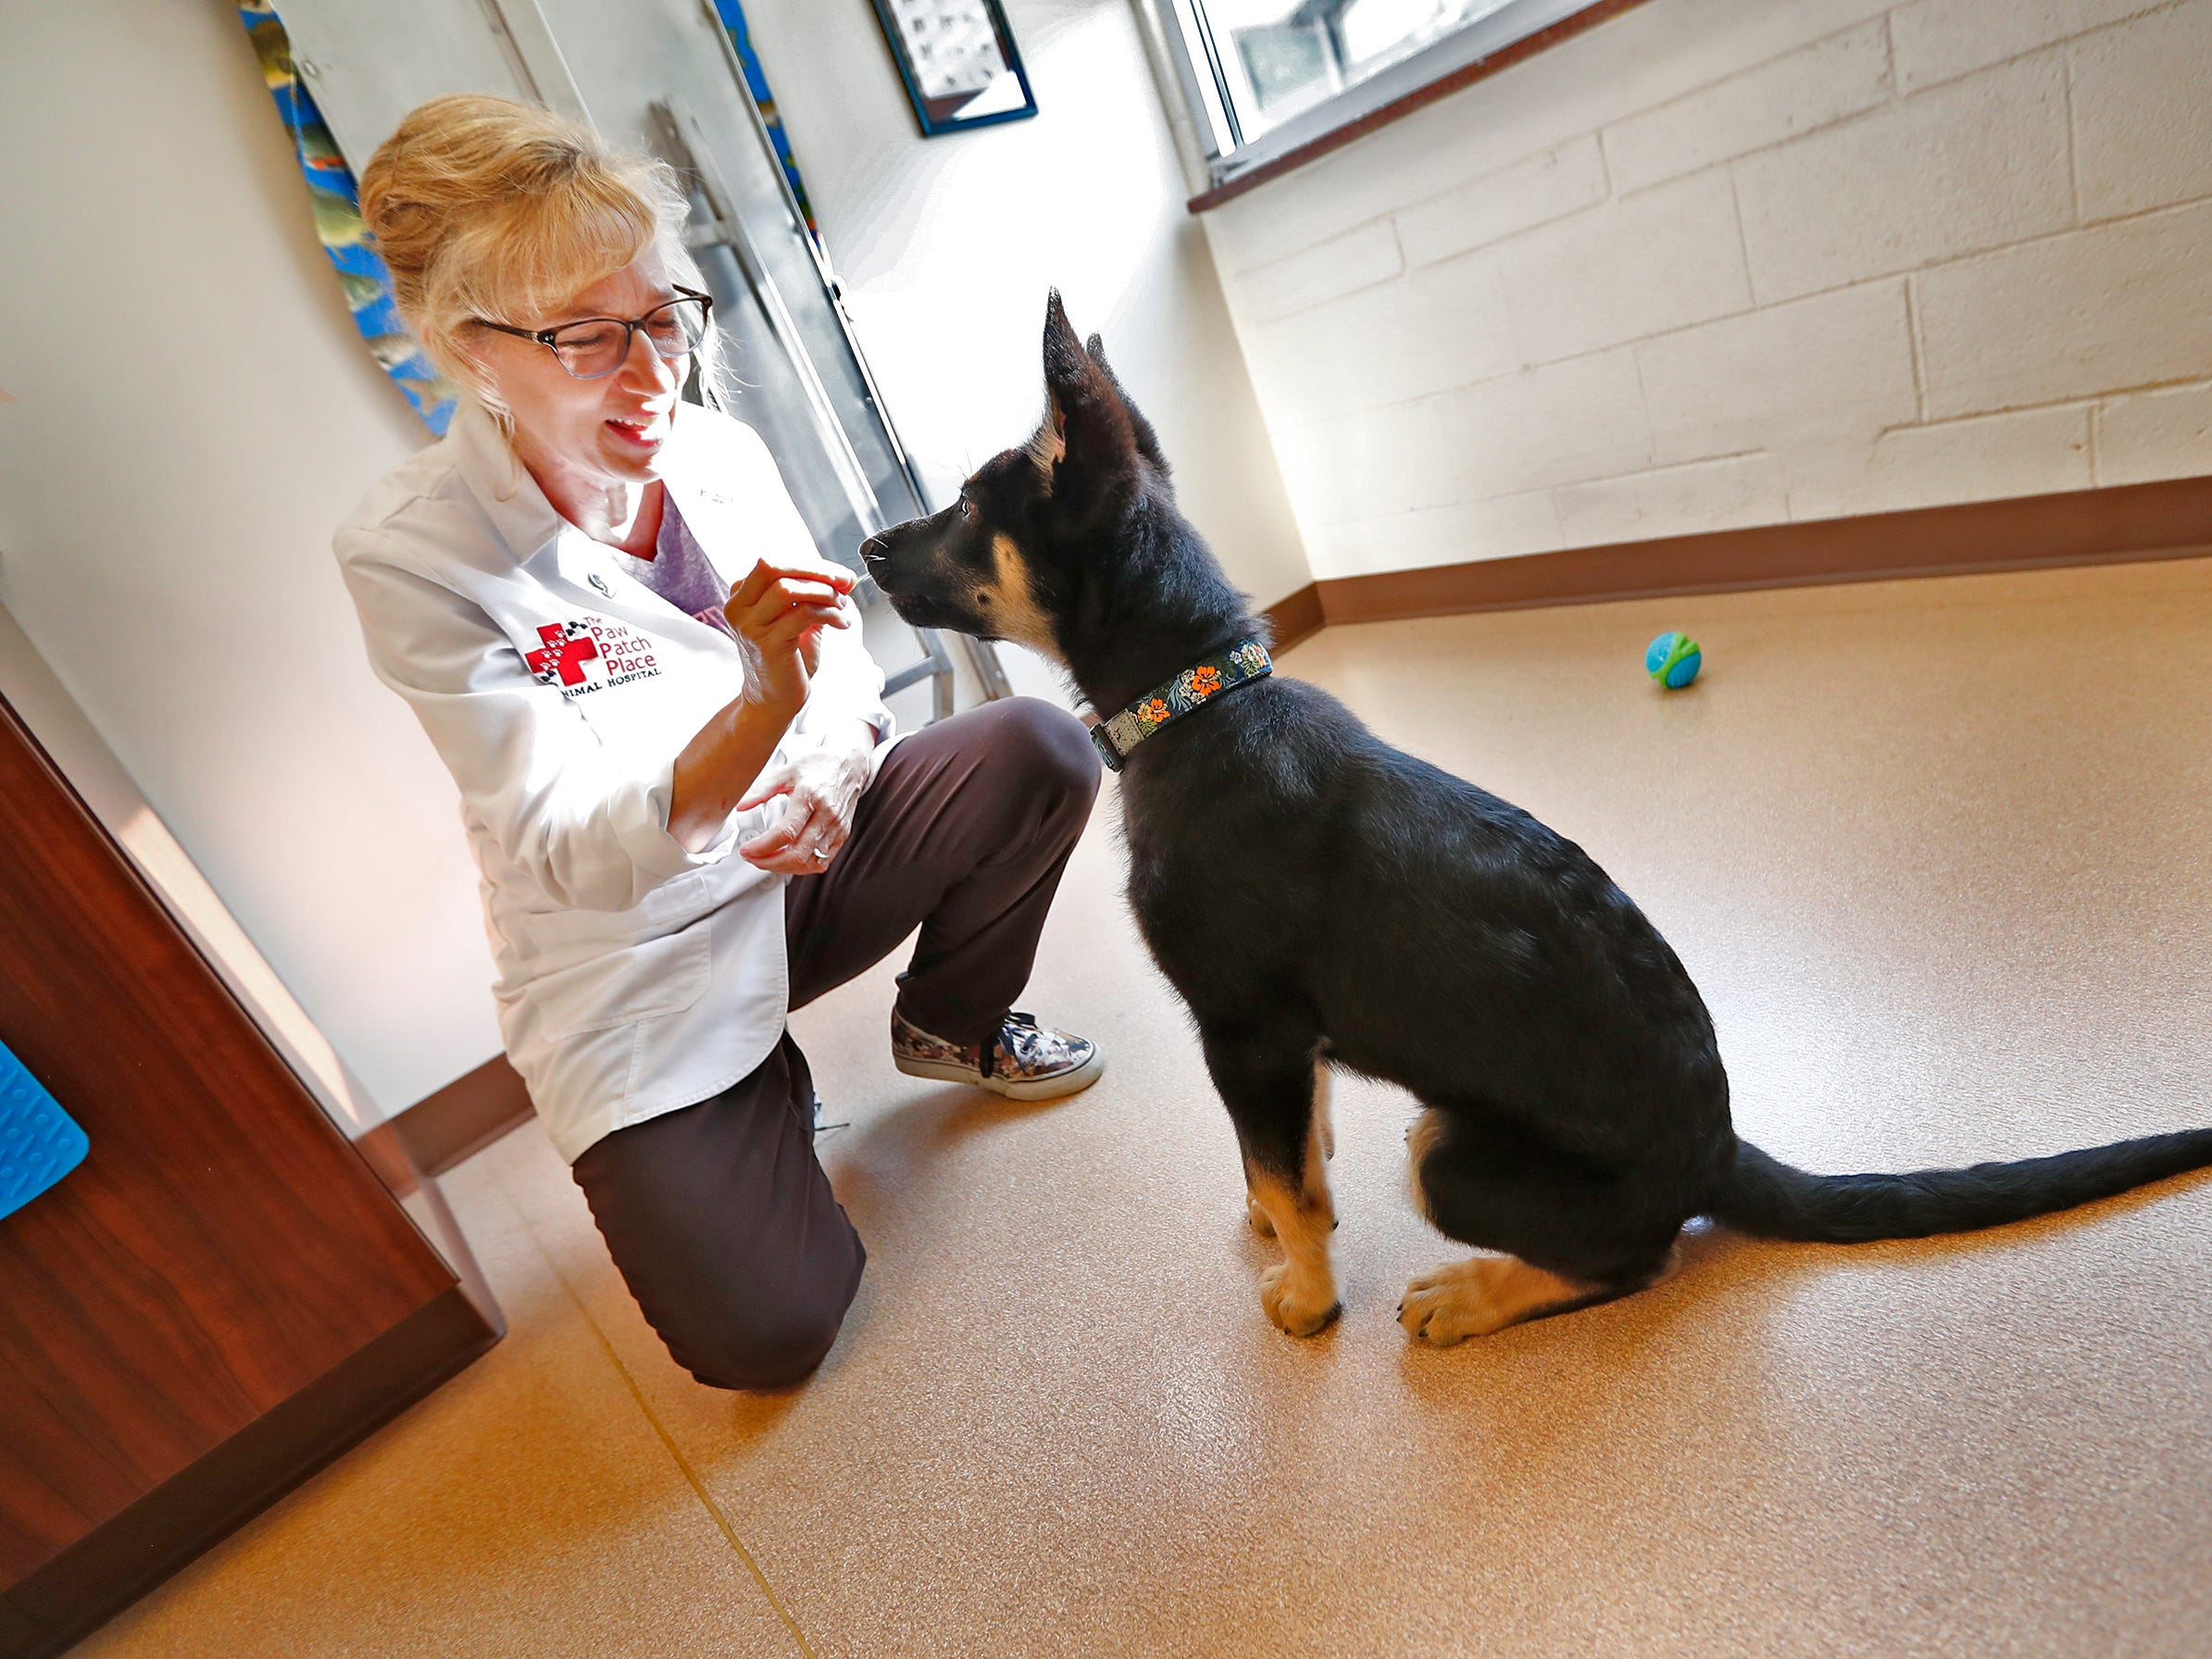 Spartacus sits as Dr. Penny Dowden gives him an oral vaccination during his appointment at Paw Patch Place Animal Hospital, Friday, Aug. 31, 2018.  The veterinary clinic is the only one in Indiana to earn special fear free certification from an international program that aims to help vets reduce anxiety for pets prone to feel stressed in their offices.